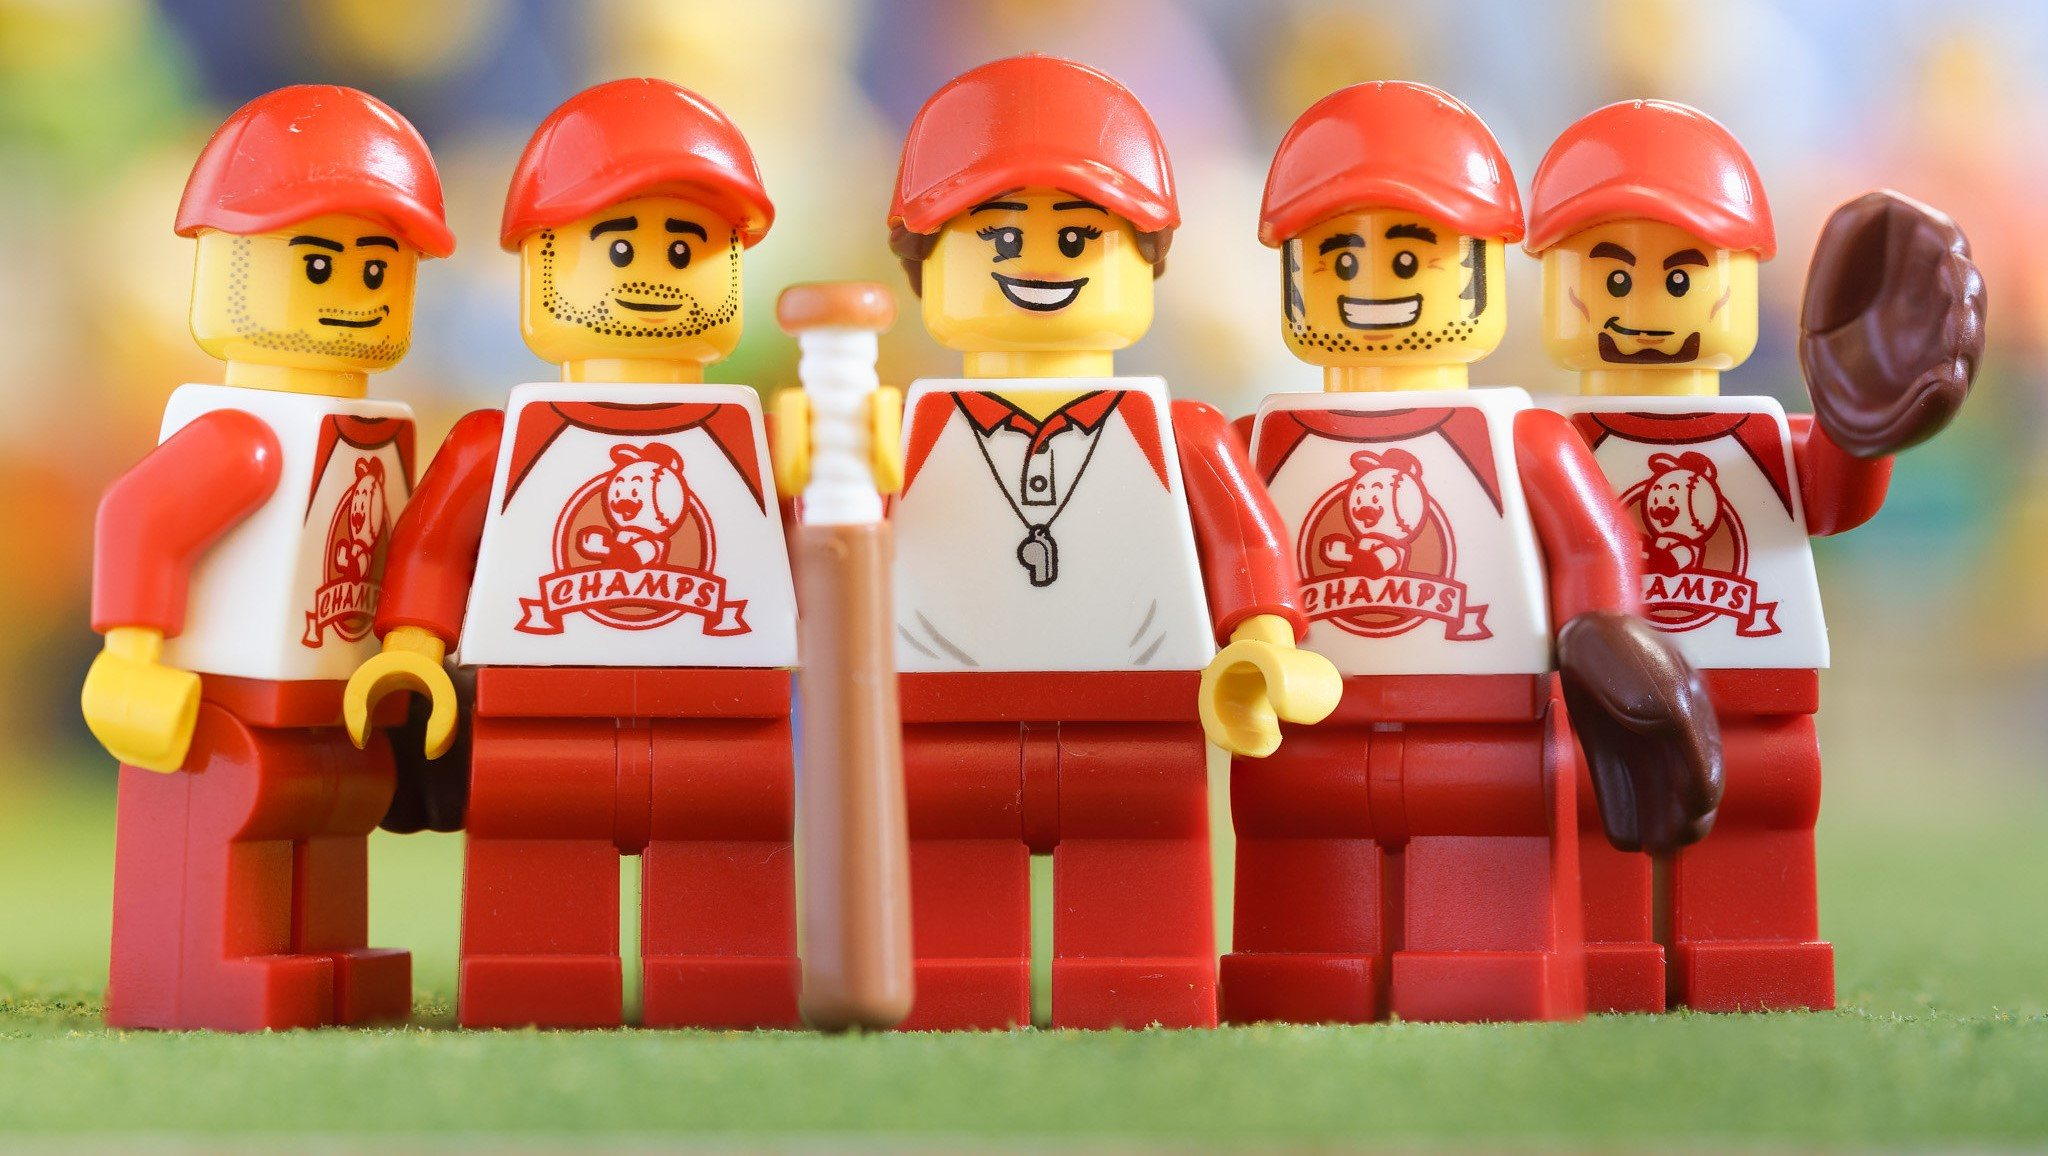 This photo shows five LEGO baseballs players smiling.